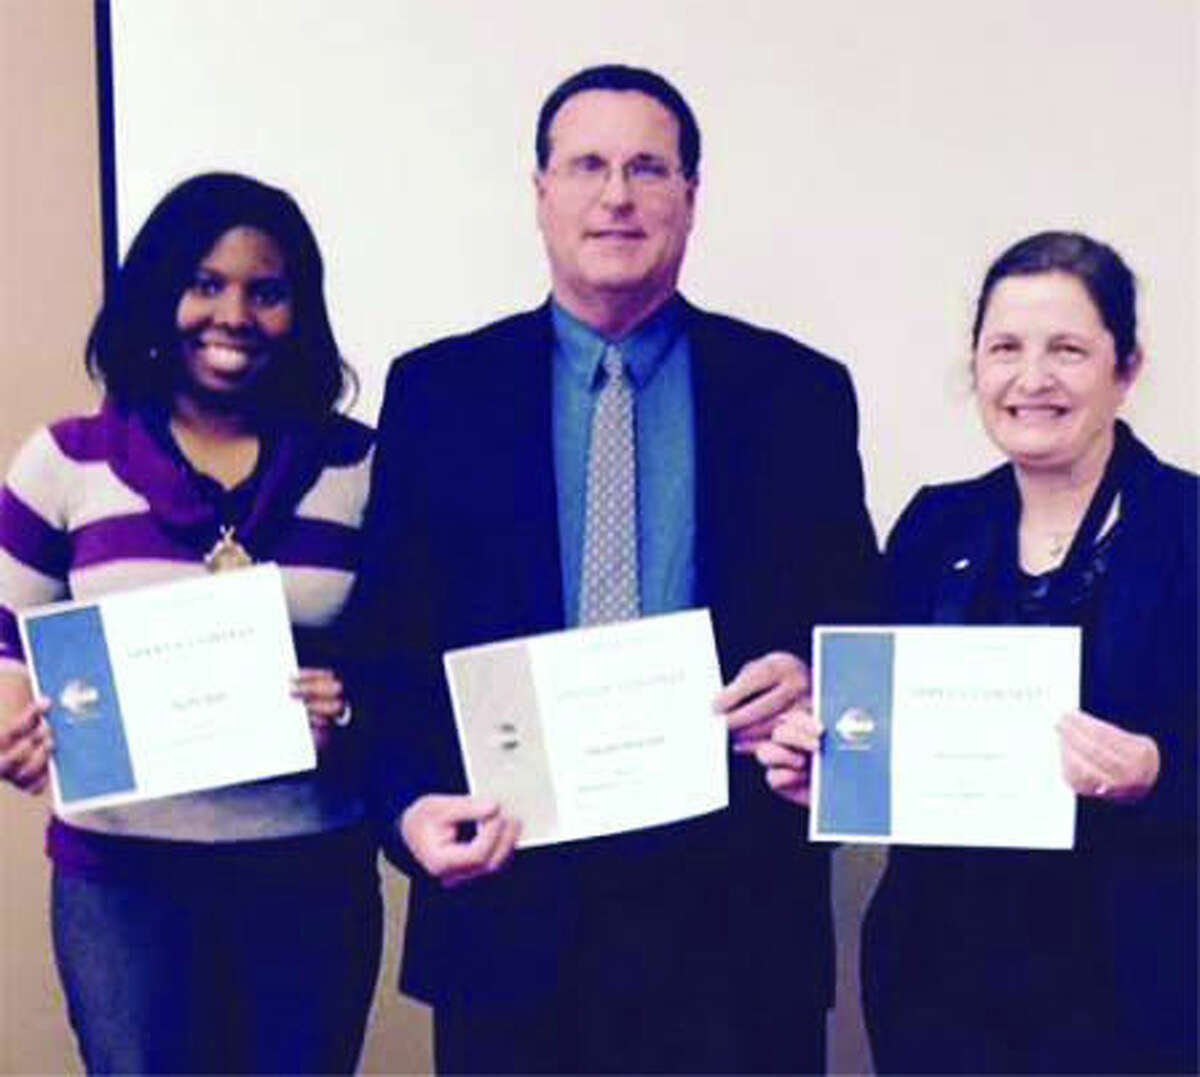 Toastmasters contest winners were Sadie Bell, Jim Gracyzk and Helen Dotson.